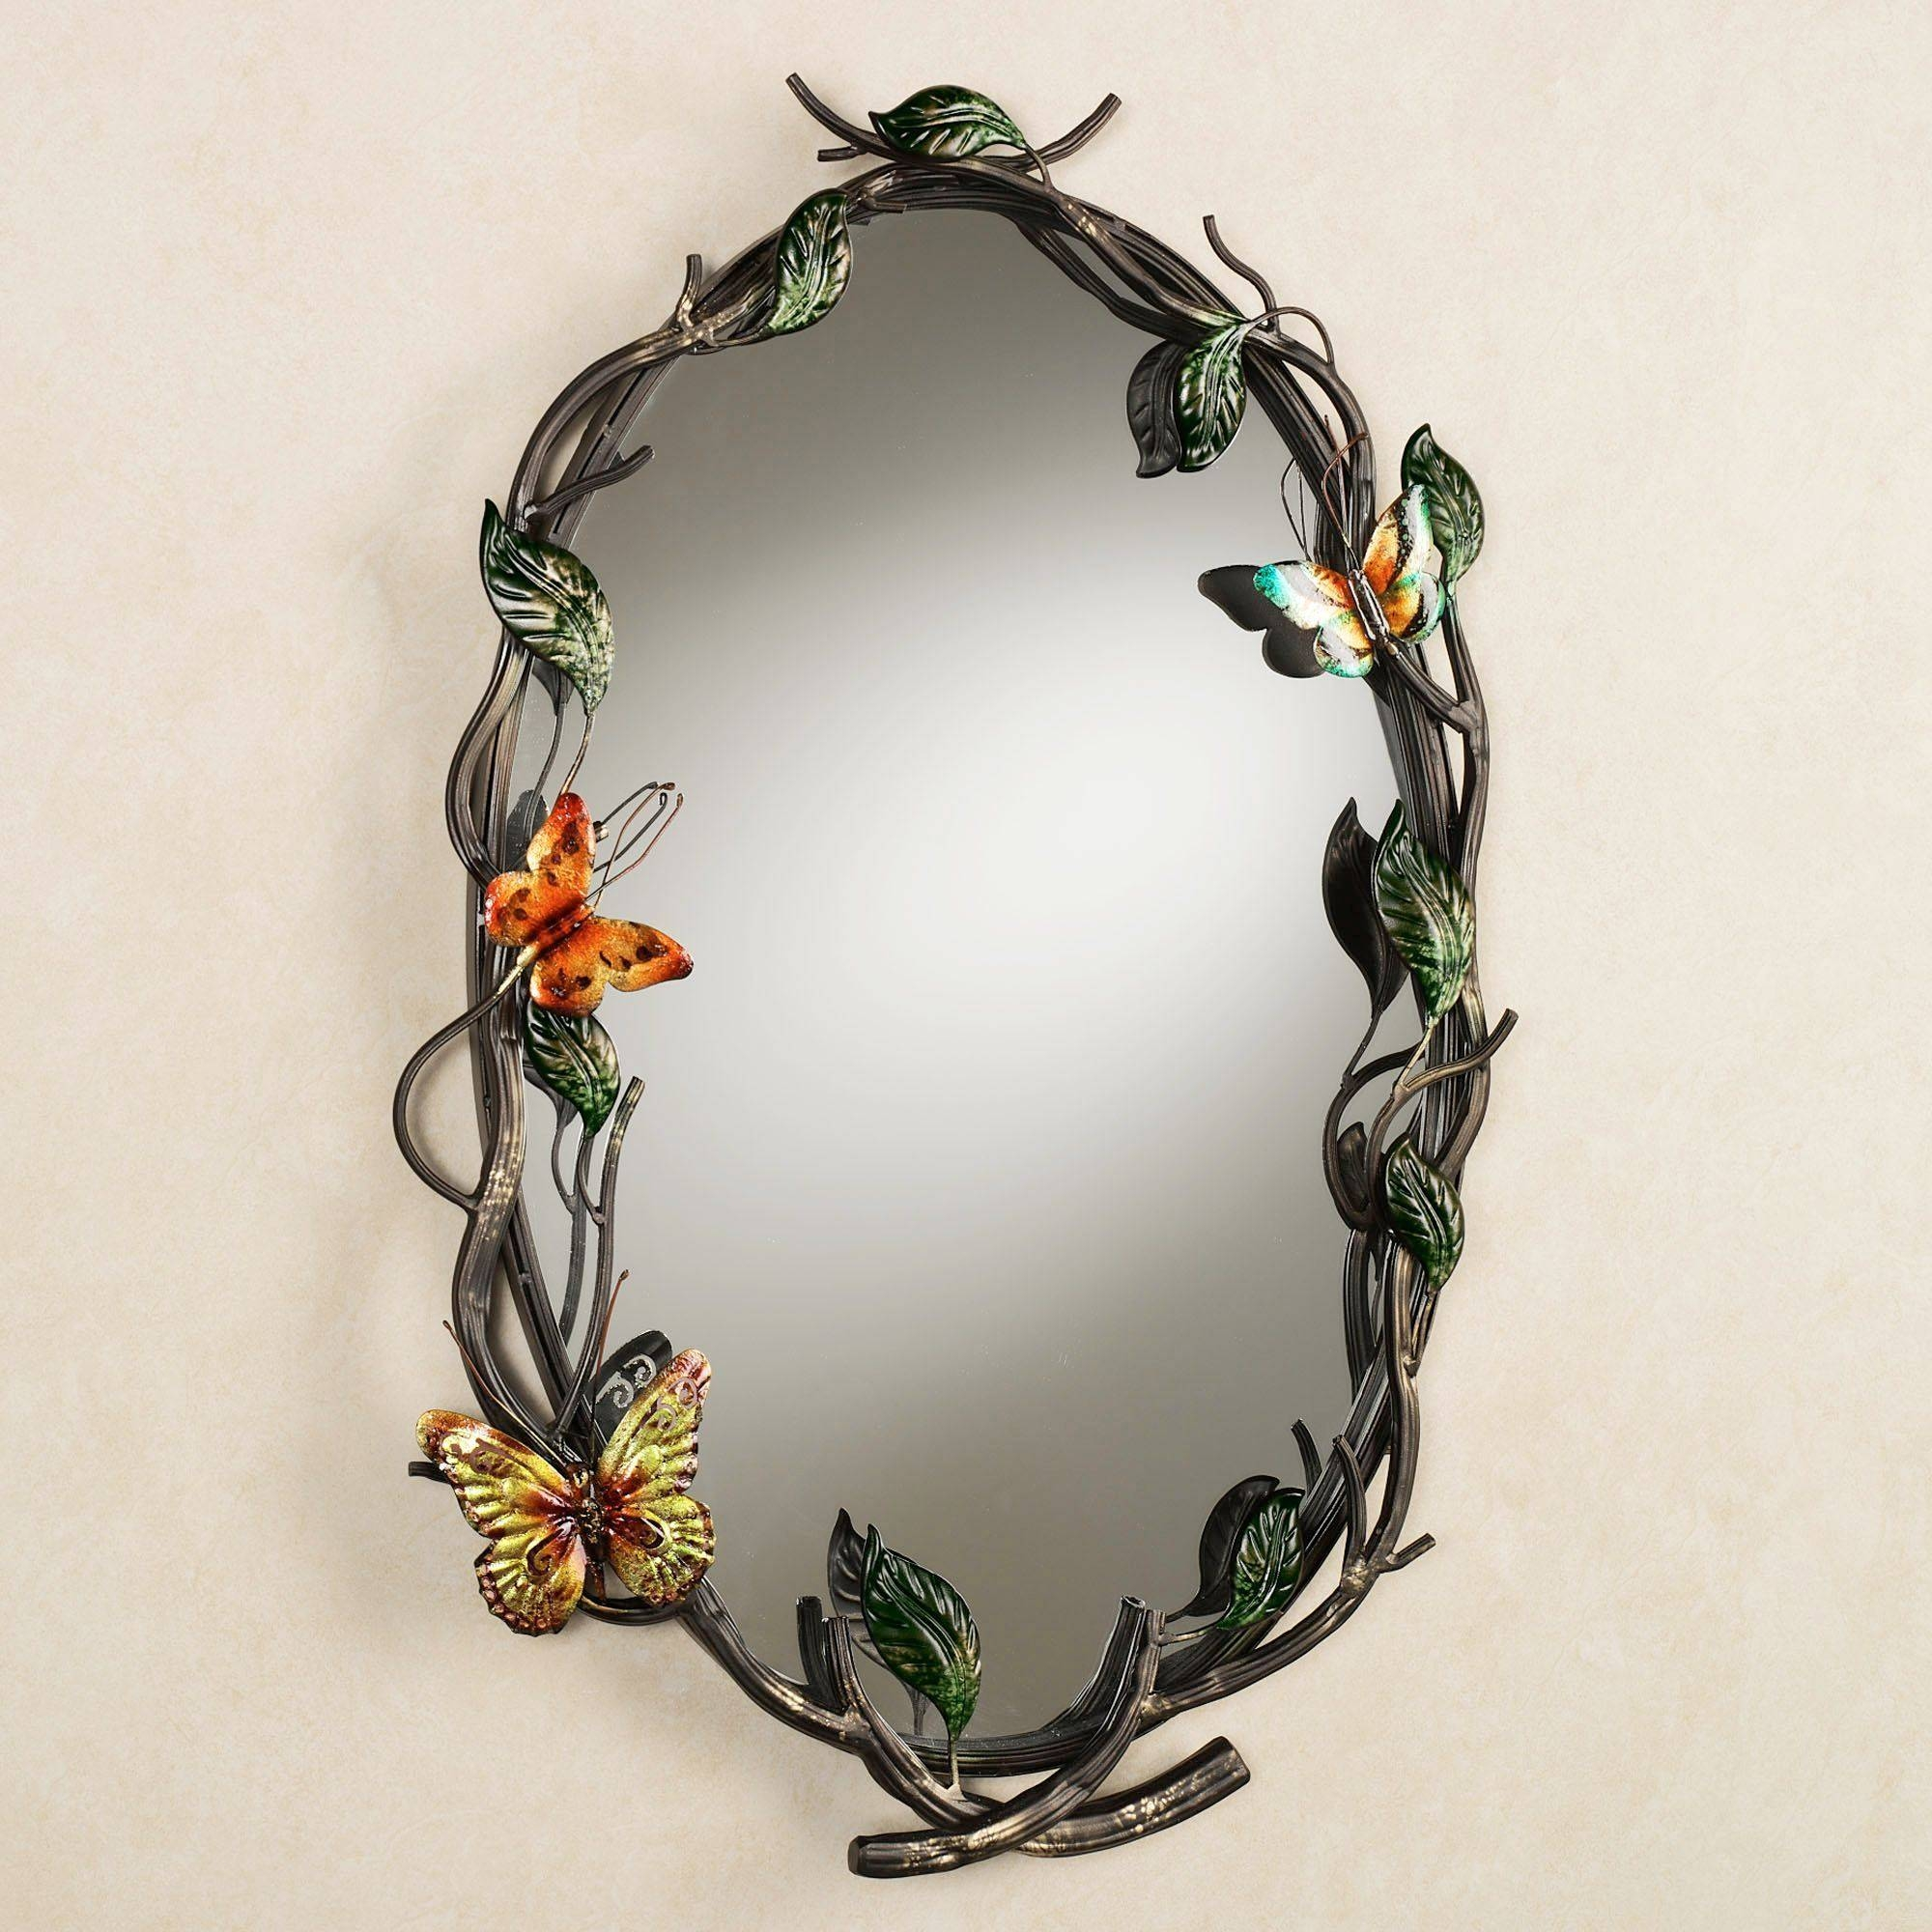 Flight Of The Butterfly Wall Mirror pertaining to Butterfly Wall Mirrors (Image 10 of 25)